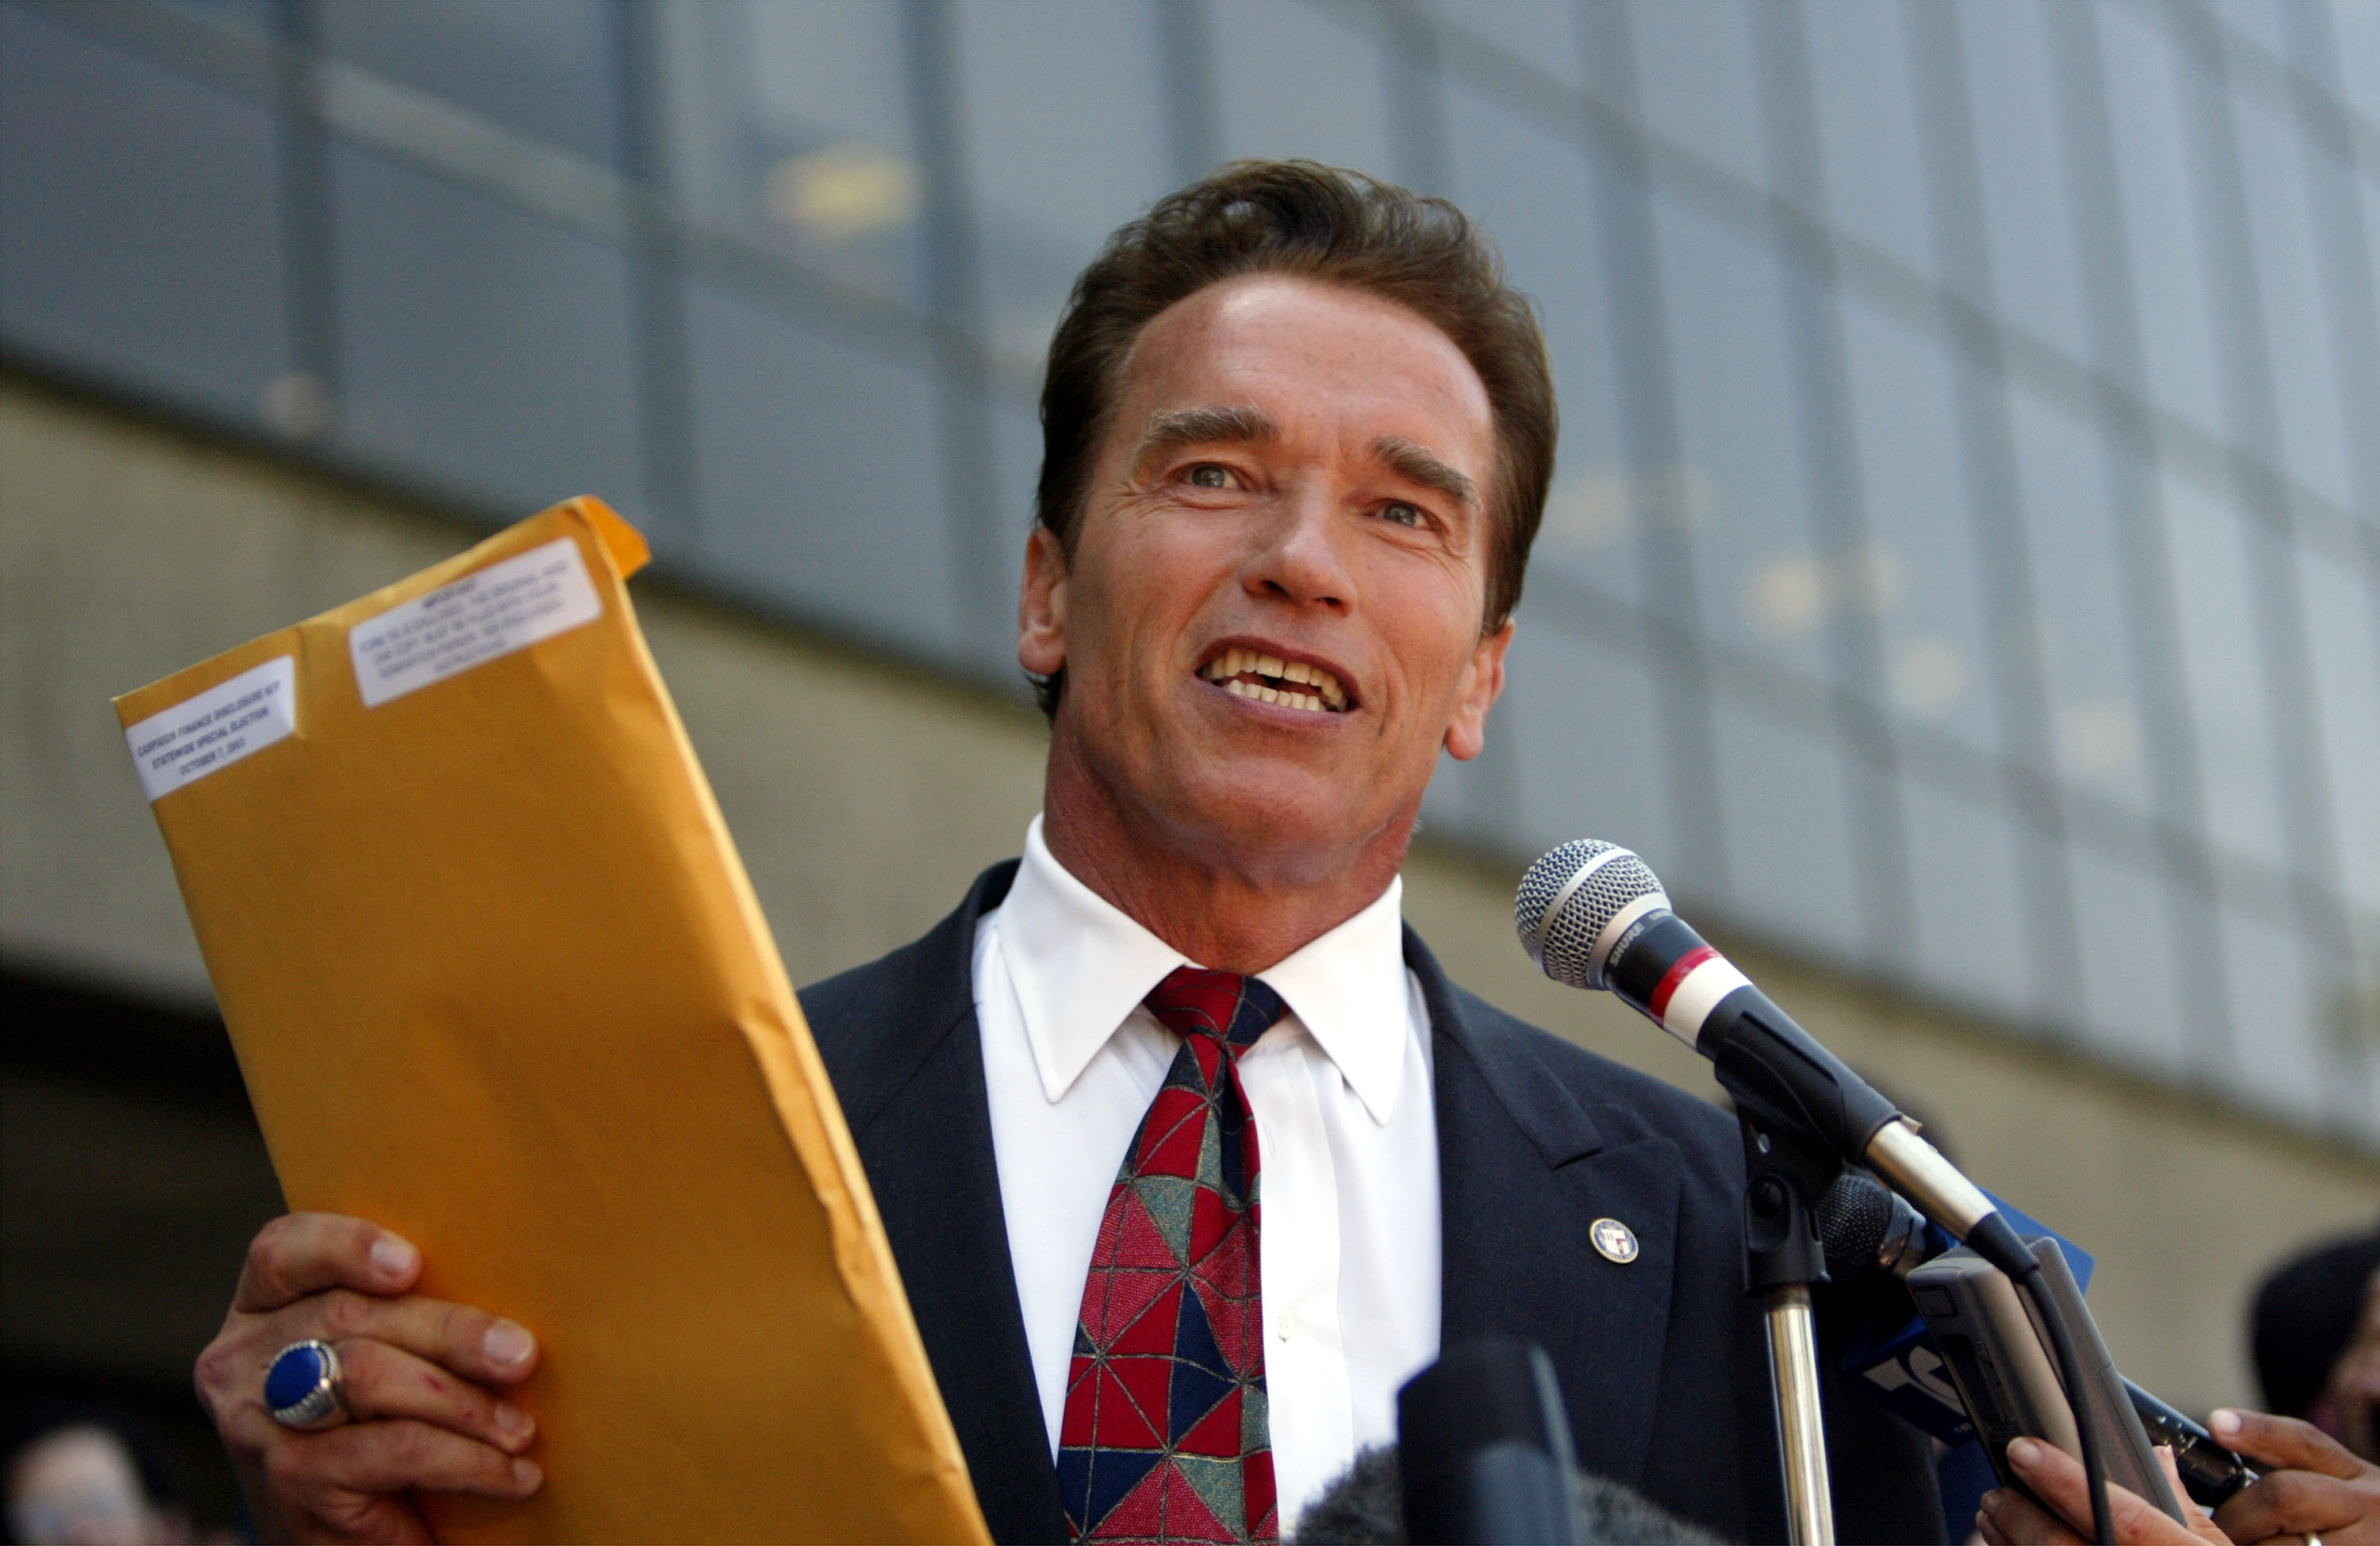 Arnold Schwarzenegger Pulls Papers To Run For Governor